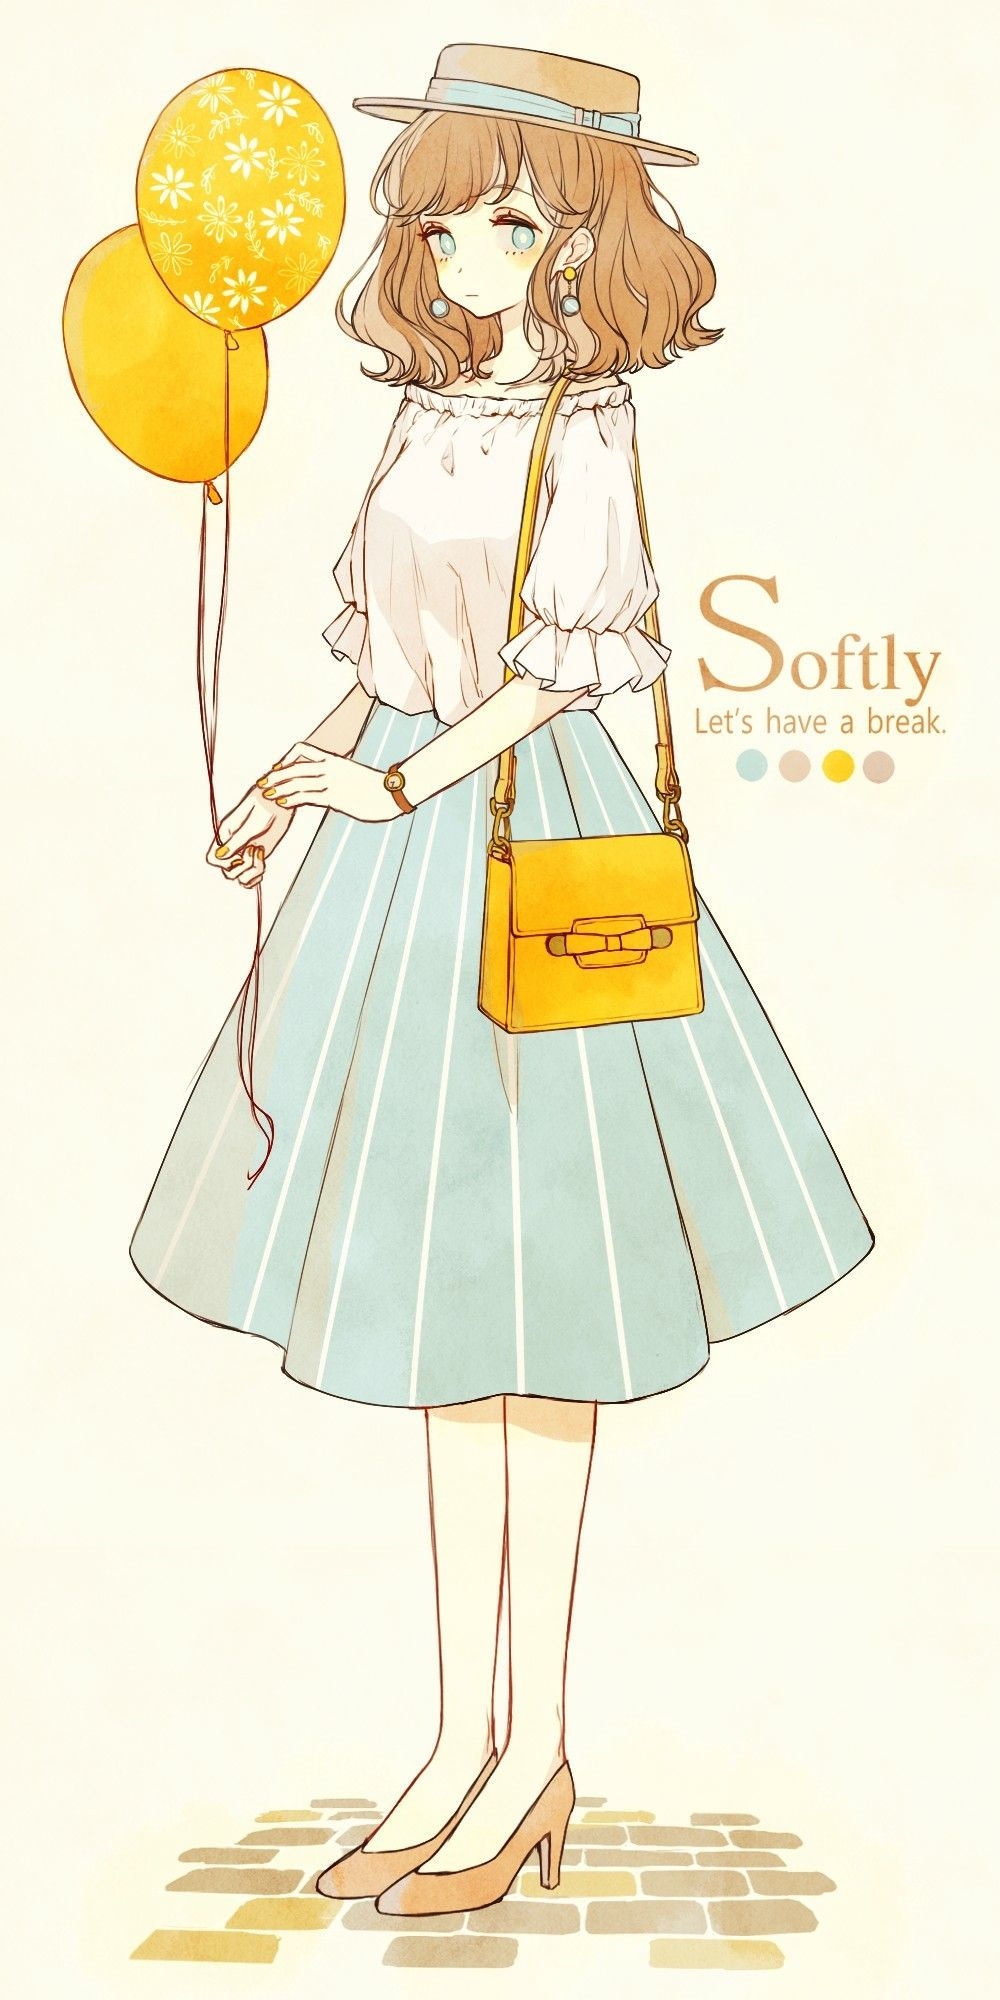 Pin By Courtney On Arts Mostly キレイ イラスト 可愛い女の子